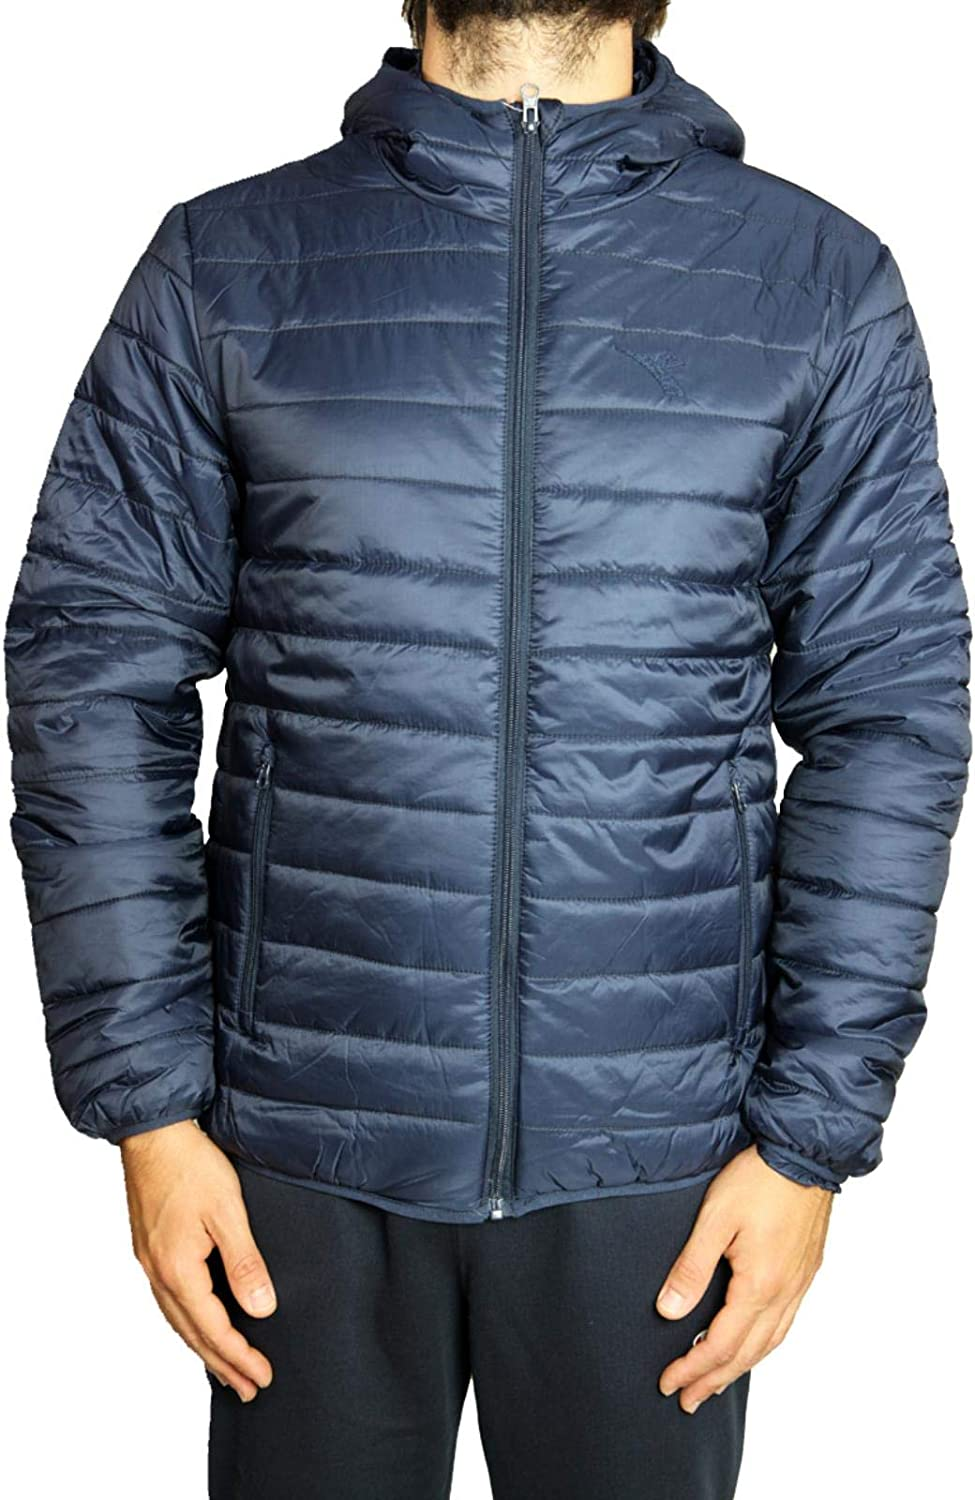 Felpa HD Light Jacket per Uomo Diadora